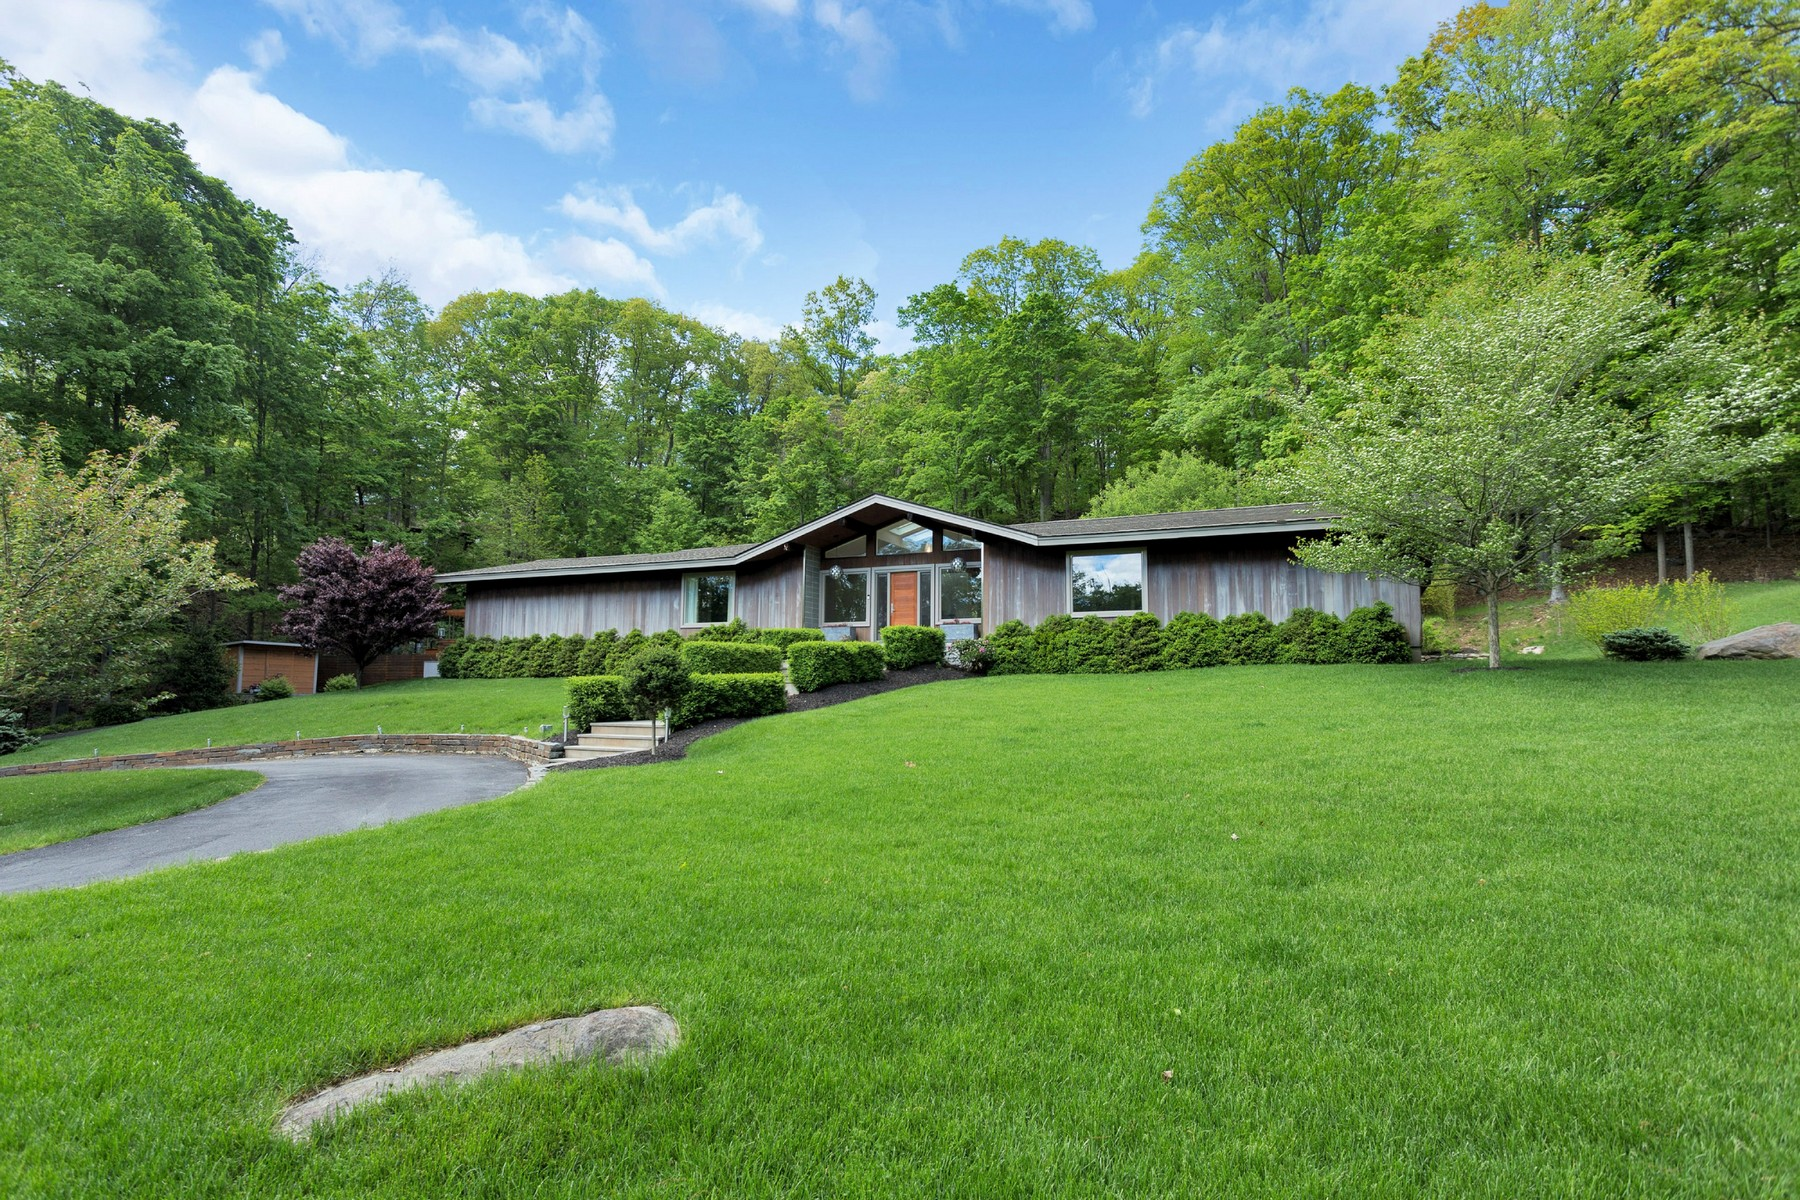 Single Family Home for Sale at Exquisite Sophistication 332 West Mount Airy Road Croton On Hudson, New York 10520 United States